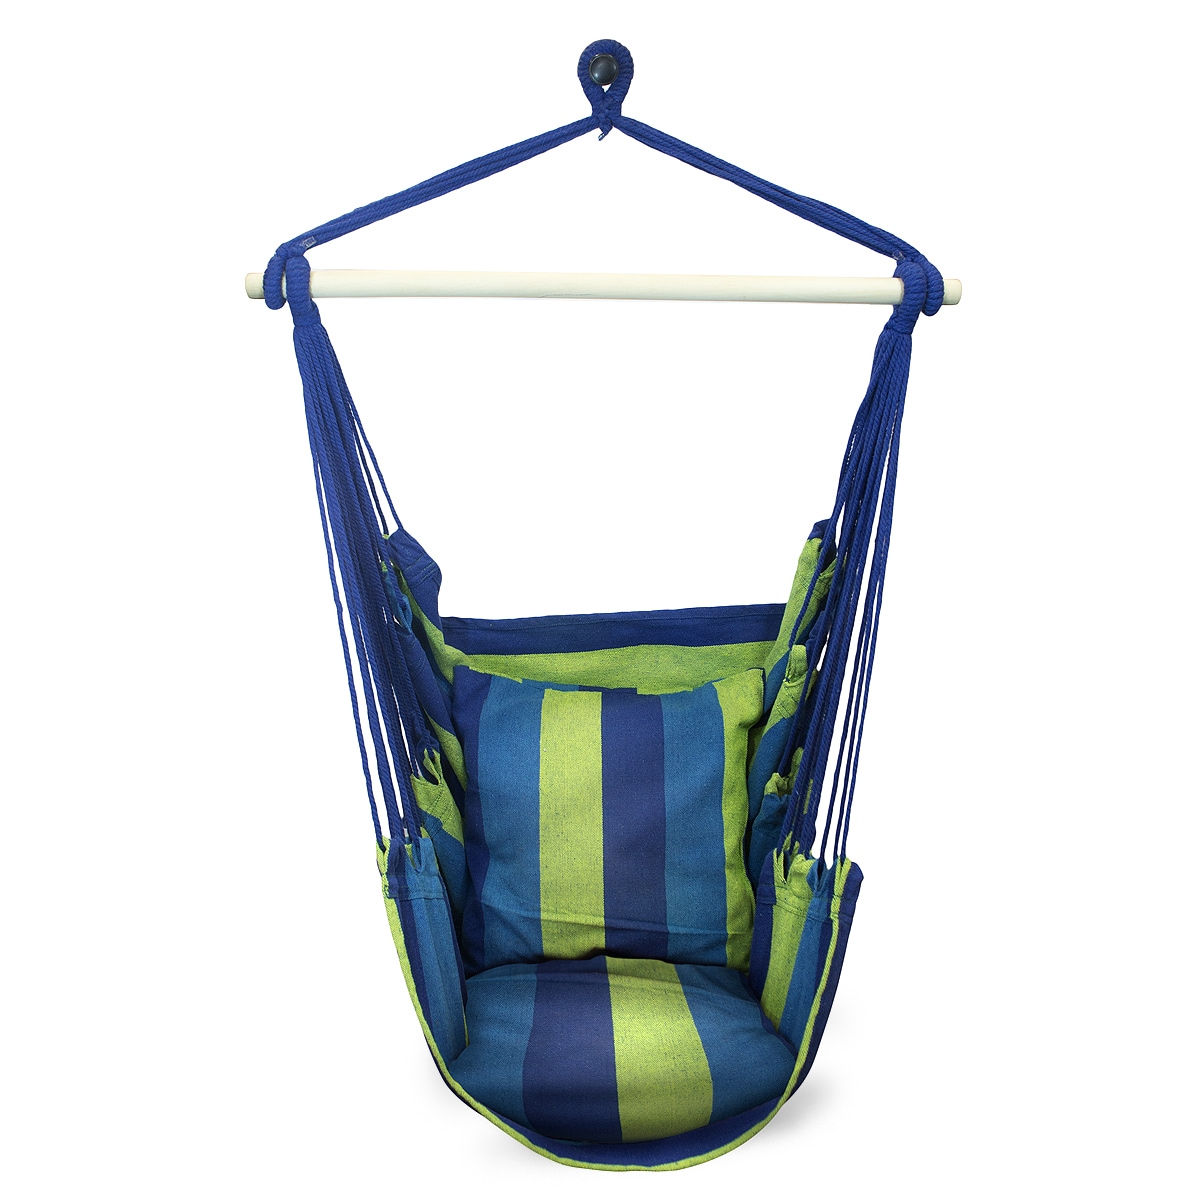 Shop Sorbus Blue Hanging Rope Hammock Chair Swing Seat Free